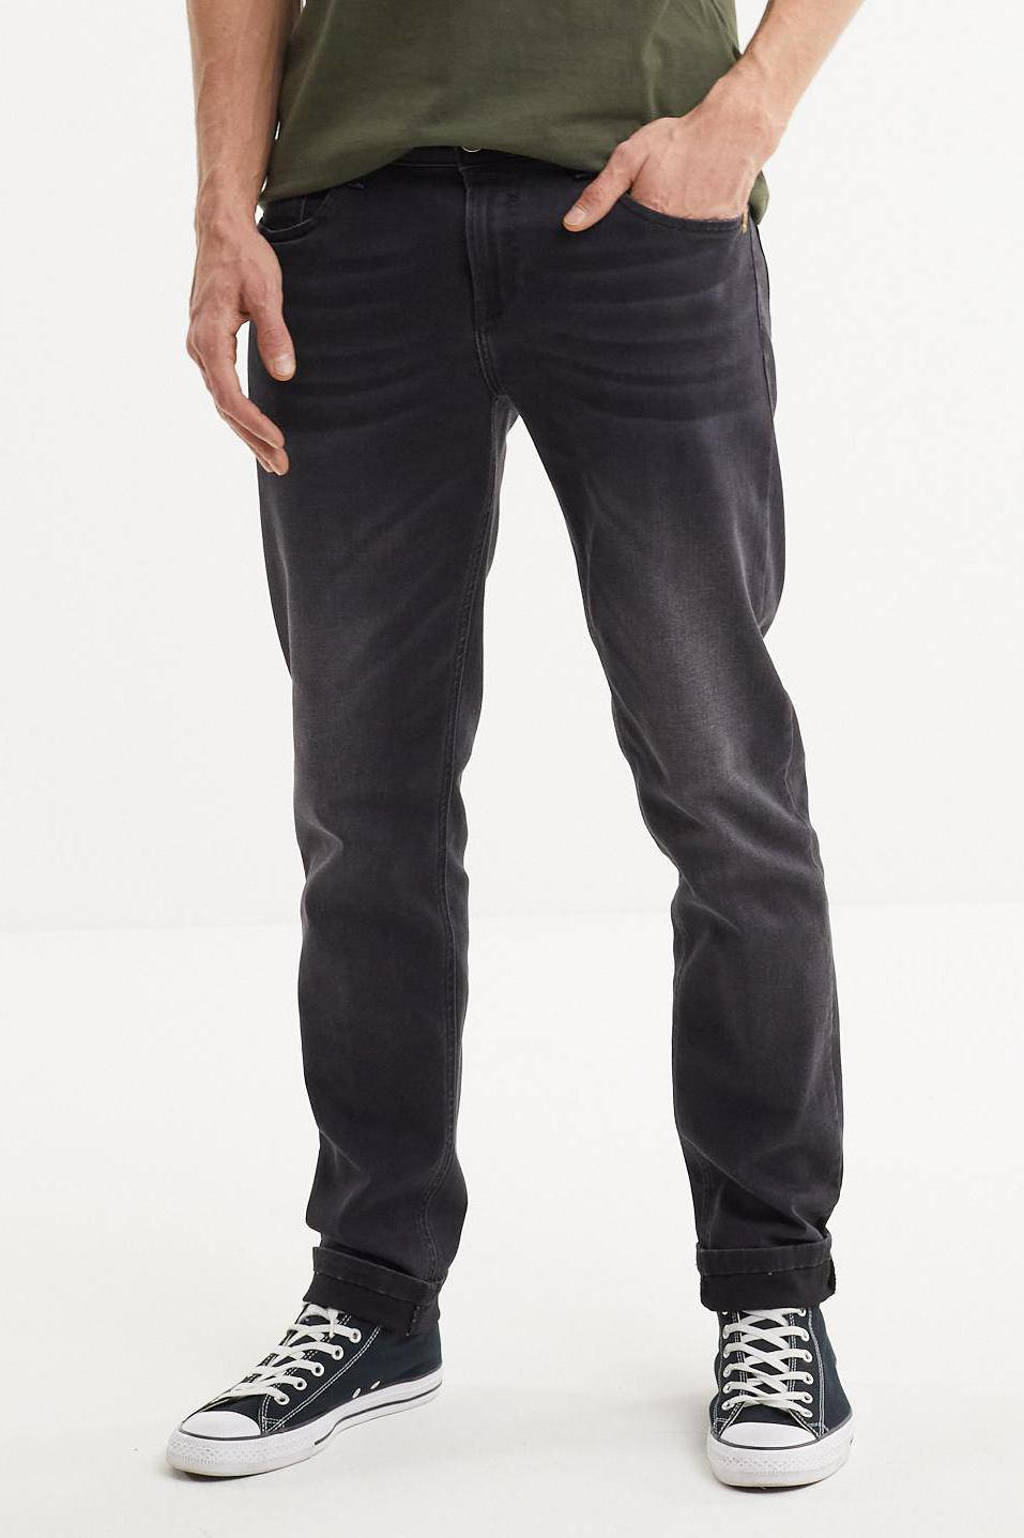 Cars tapered fit jeans Shield black used, 01 Black Used